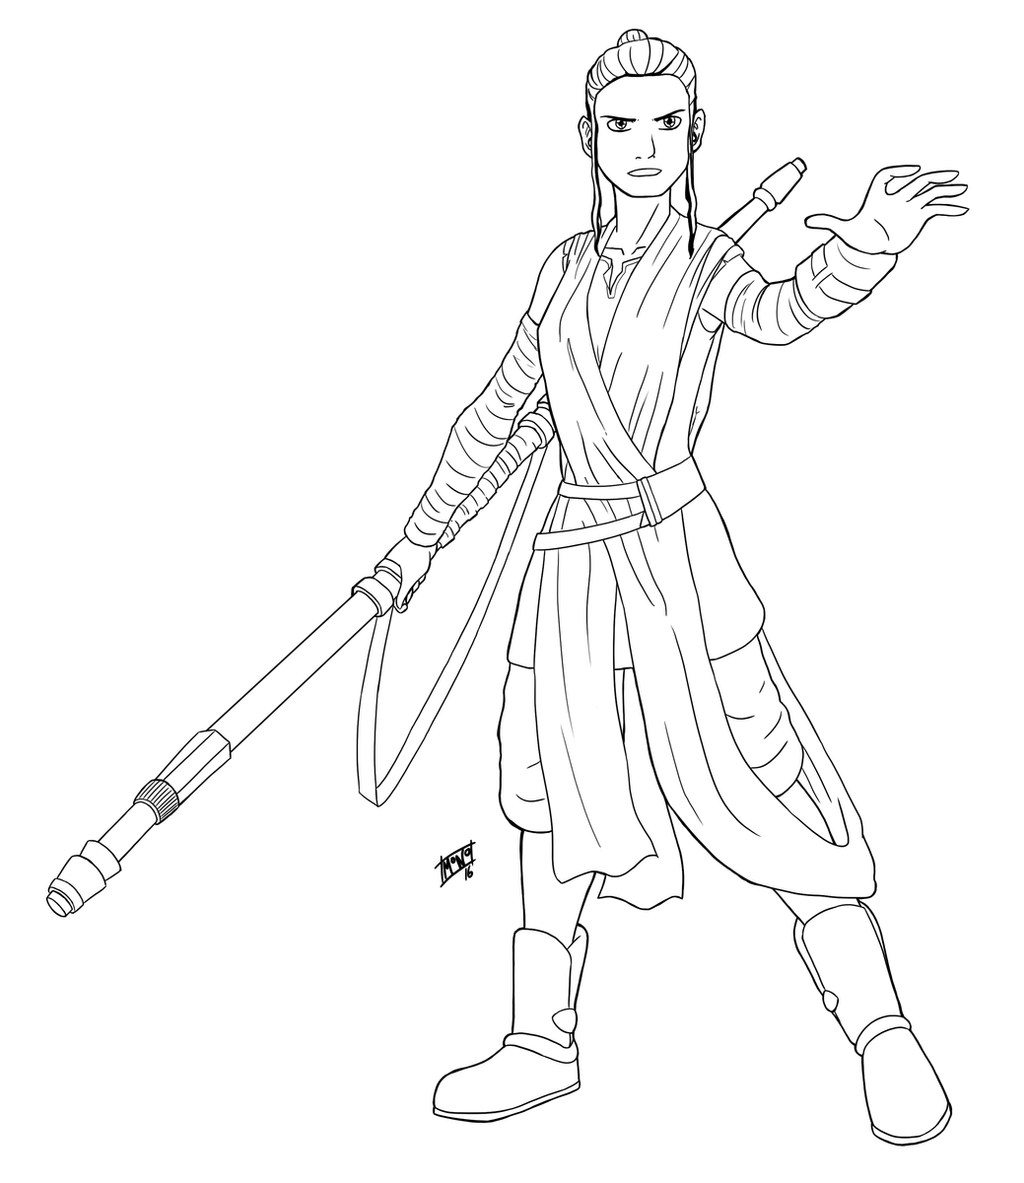 Star Wars Rey By Mono Phos On Deviantart Coloriage Star Wars 40